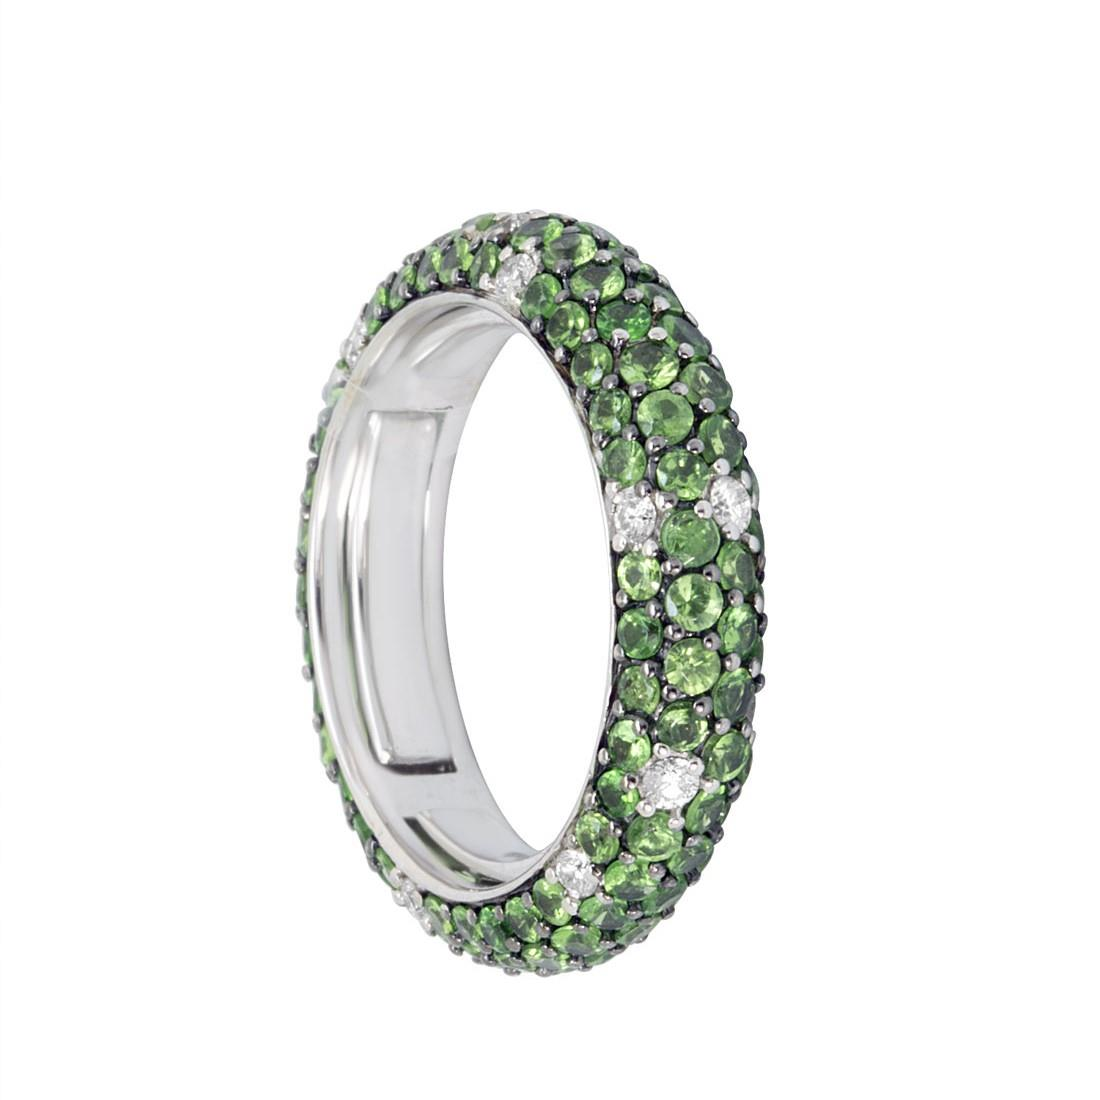 Anello eternity in oro bianco con diamanti ct 0.30 e tsavorite ct 2.40 - ALFIERI ST JOHN